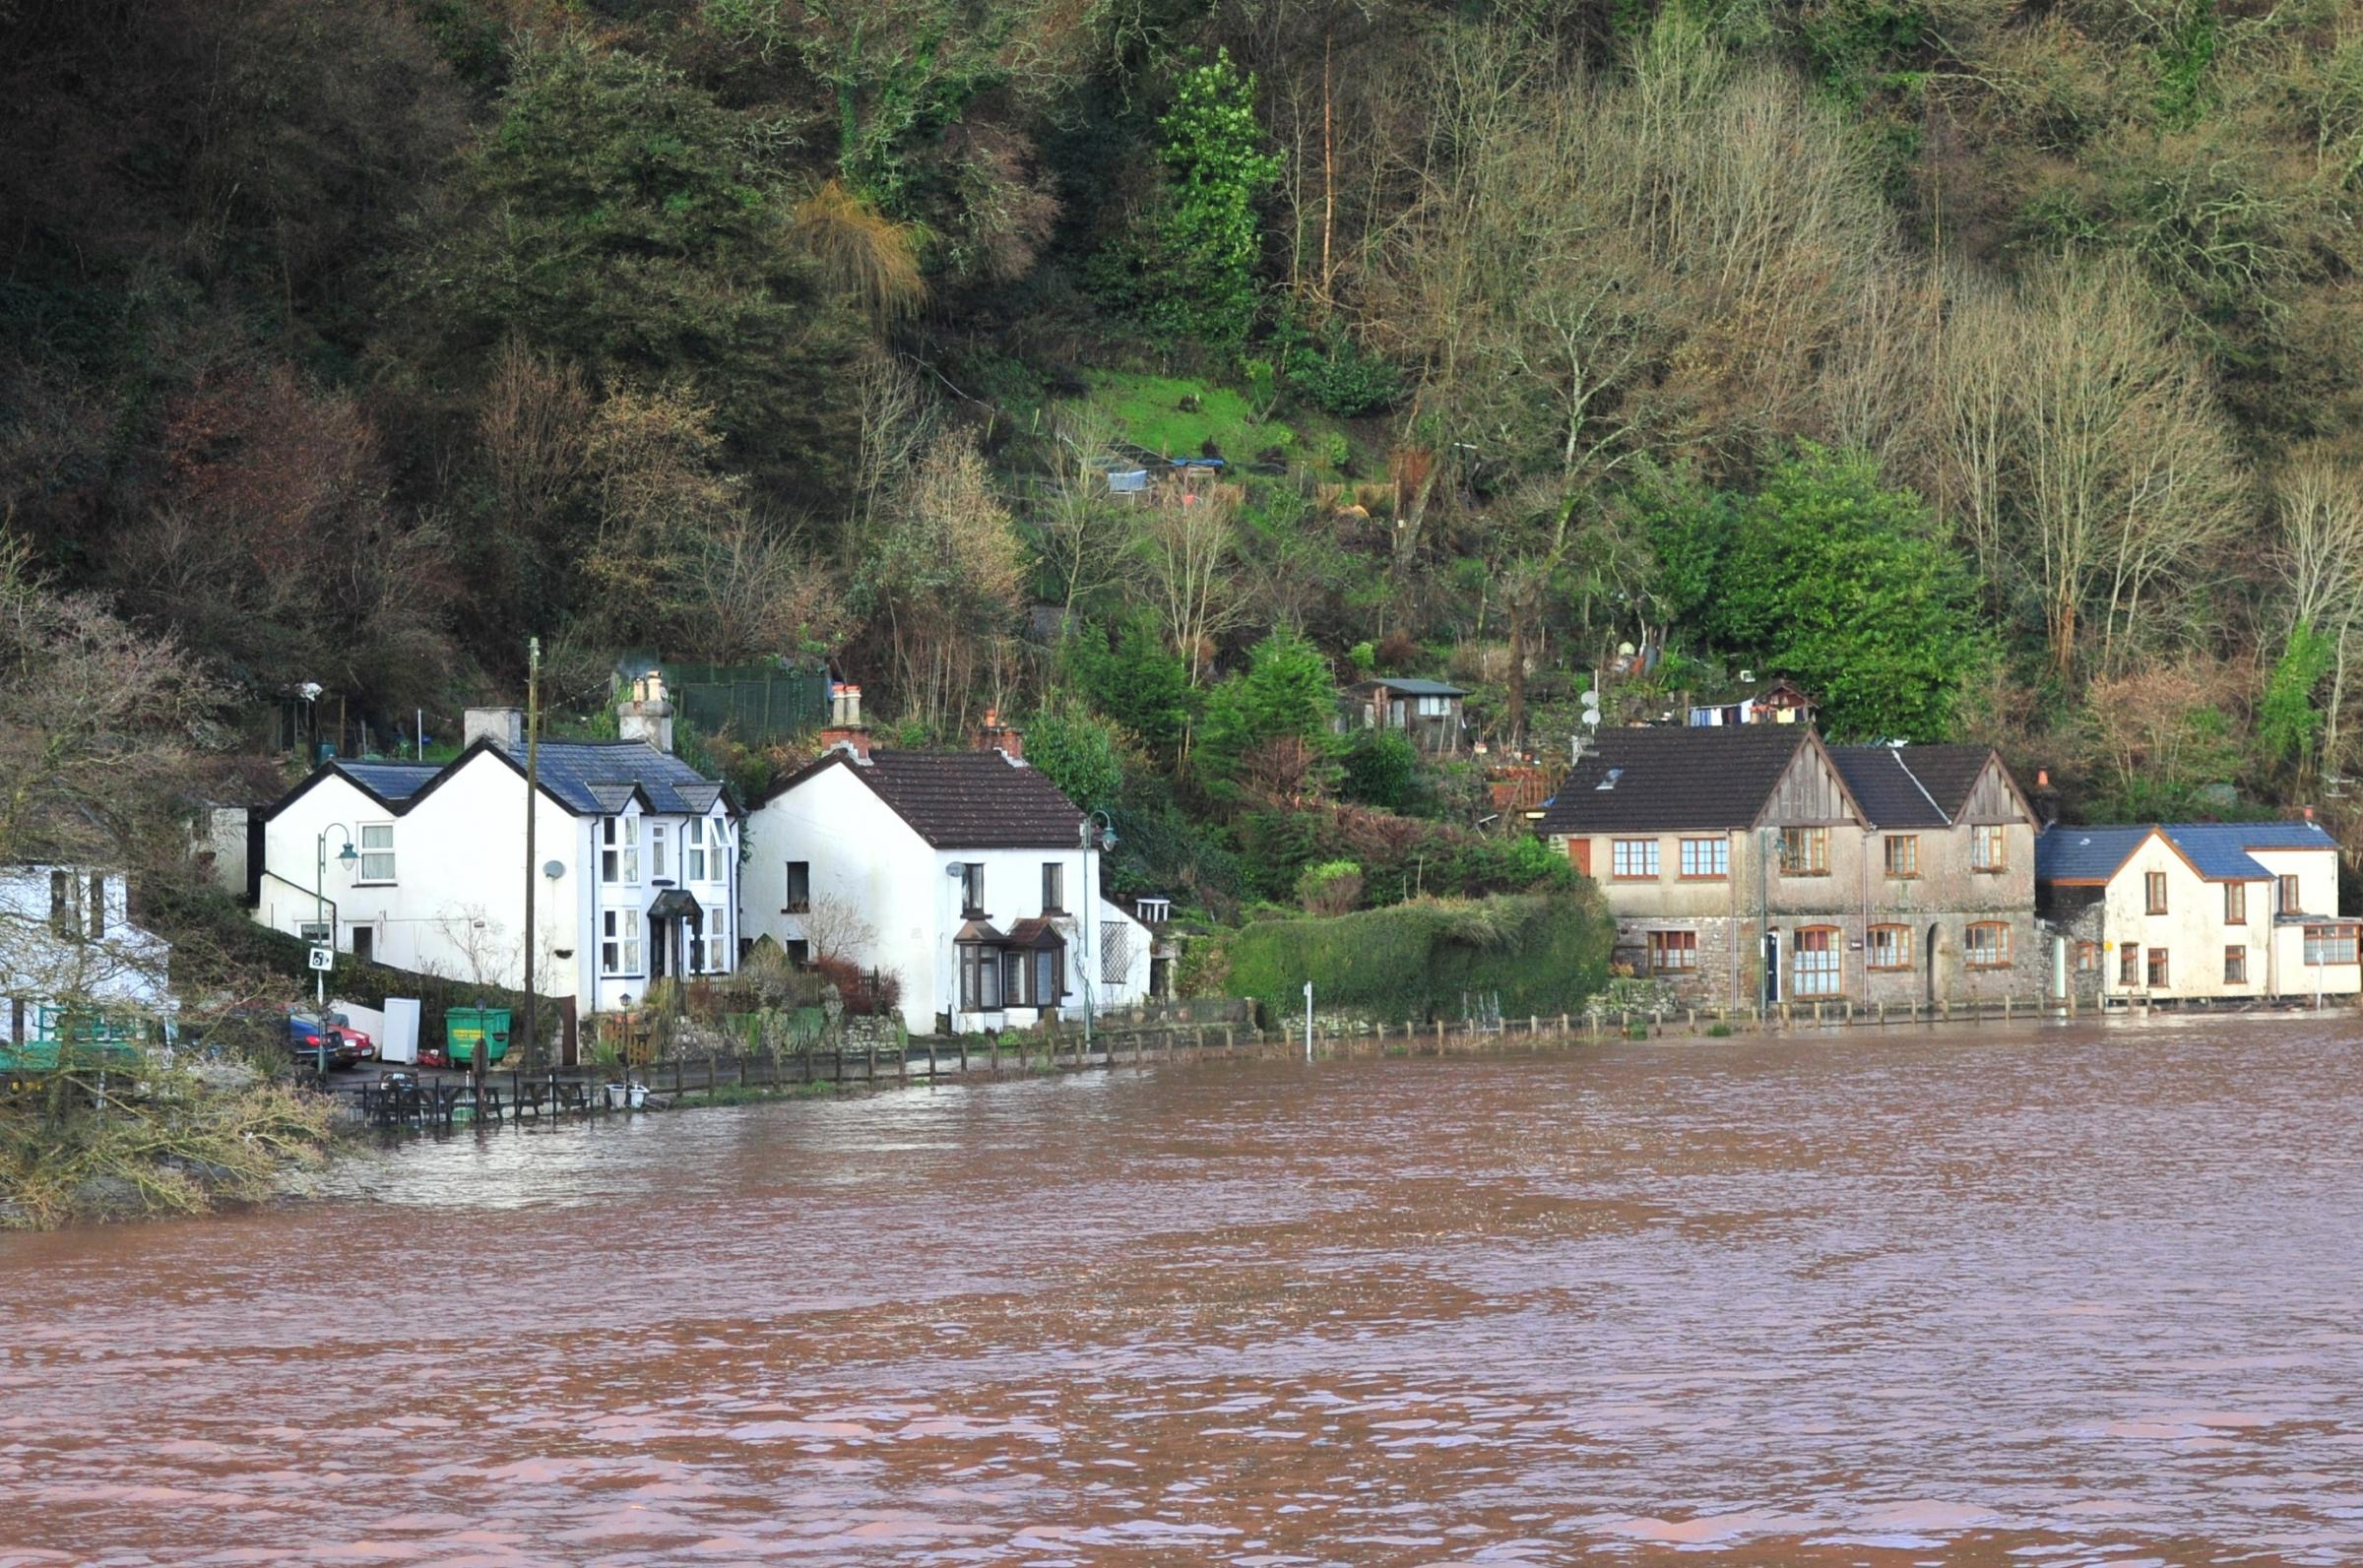 Picture of the Day - The village of Tintern flooded by tidal water from the Wye on Saturday February 1st 2014.